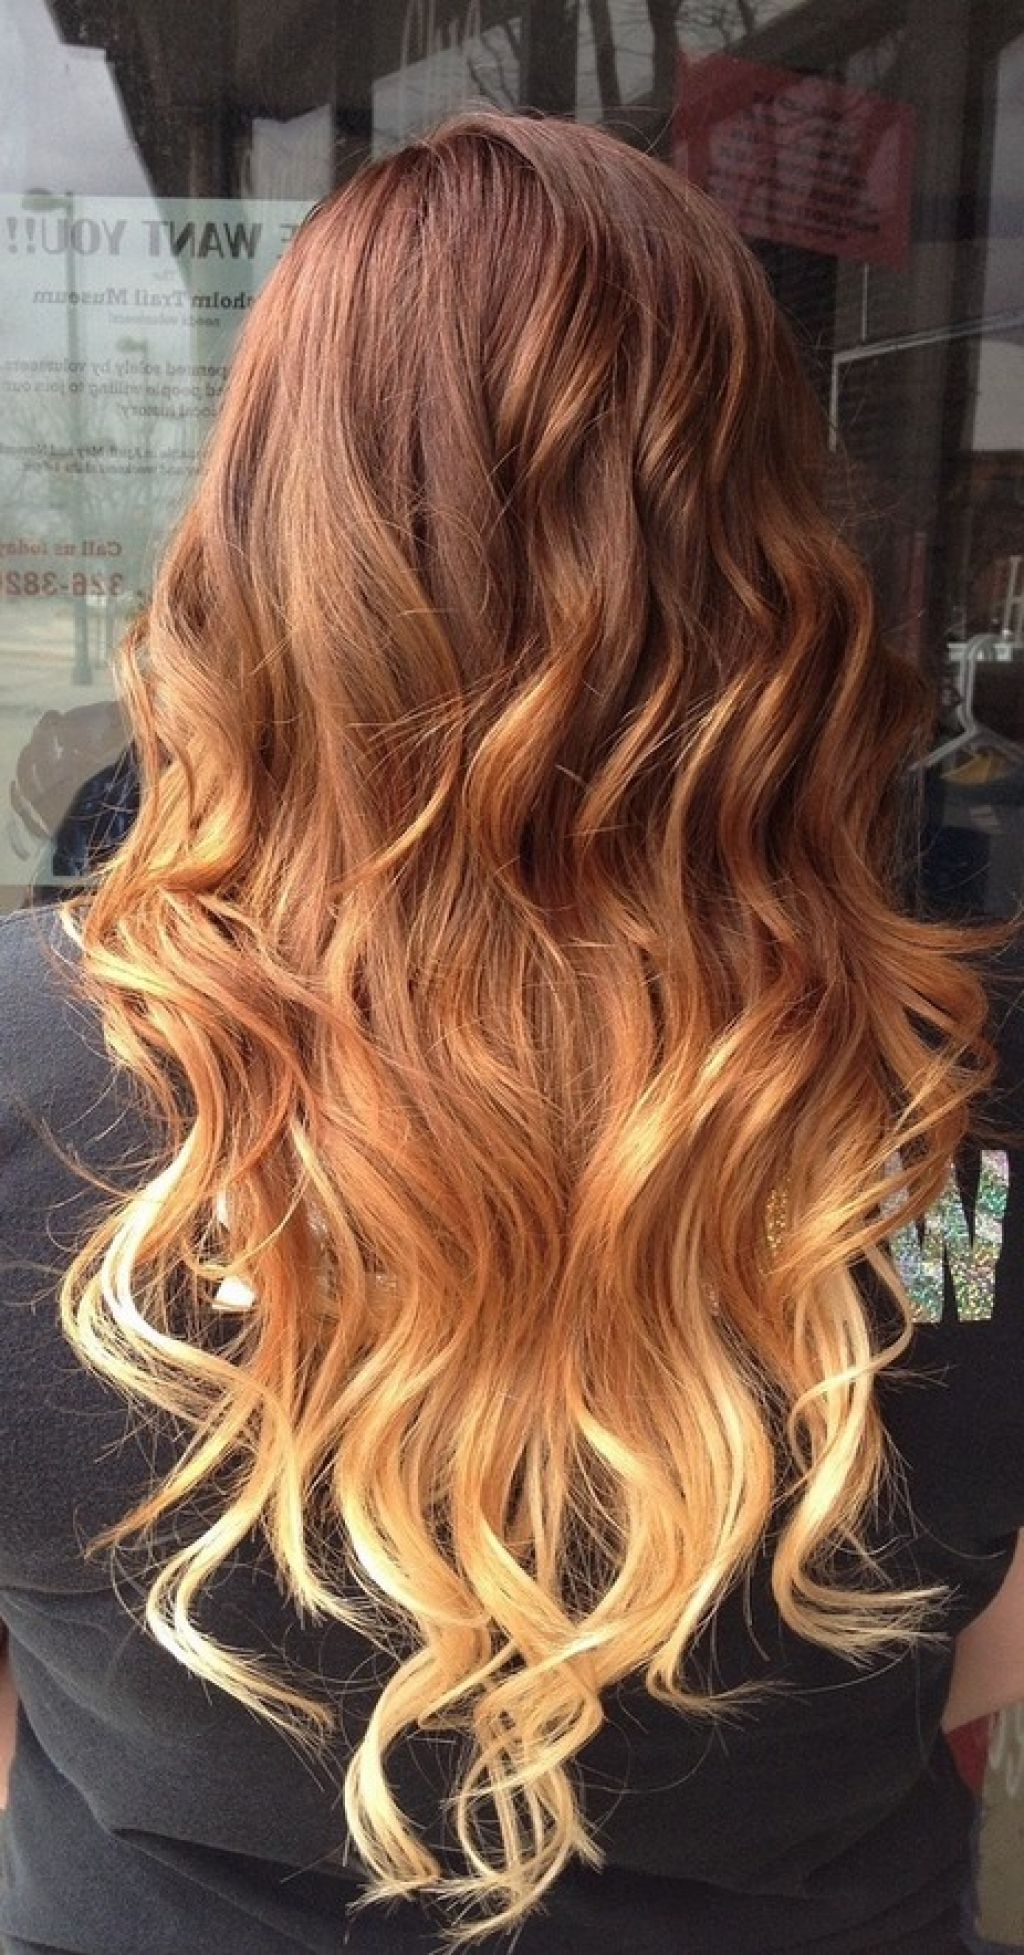 red ombre hair color ideas 2015 hairstyles trend hair 4